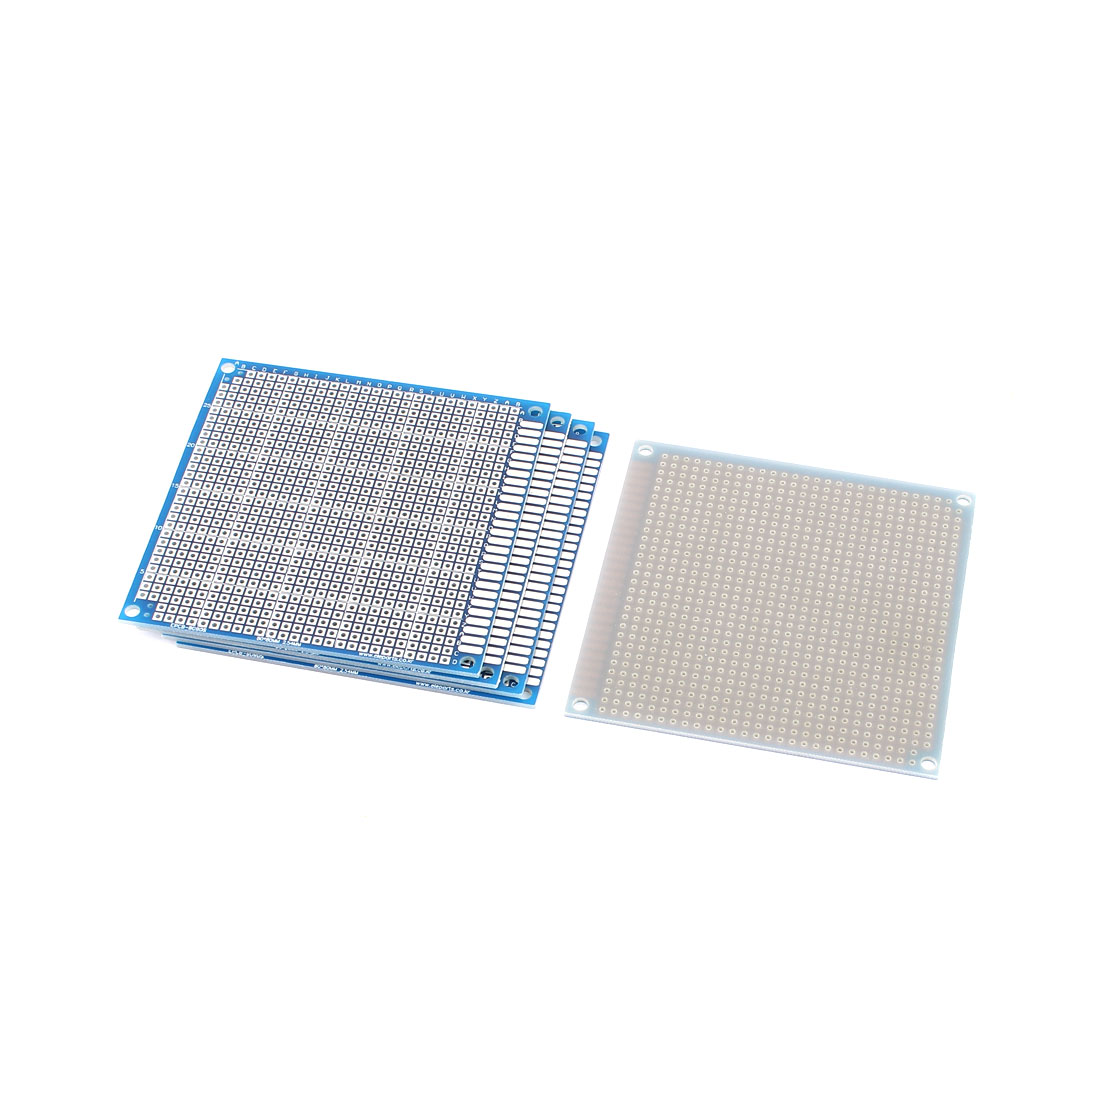 5PCS Single-sided PCB Printed Circuit Board Prototype Breadboard 8x8cm